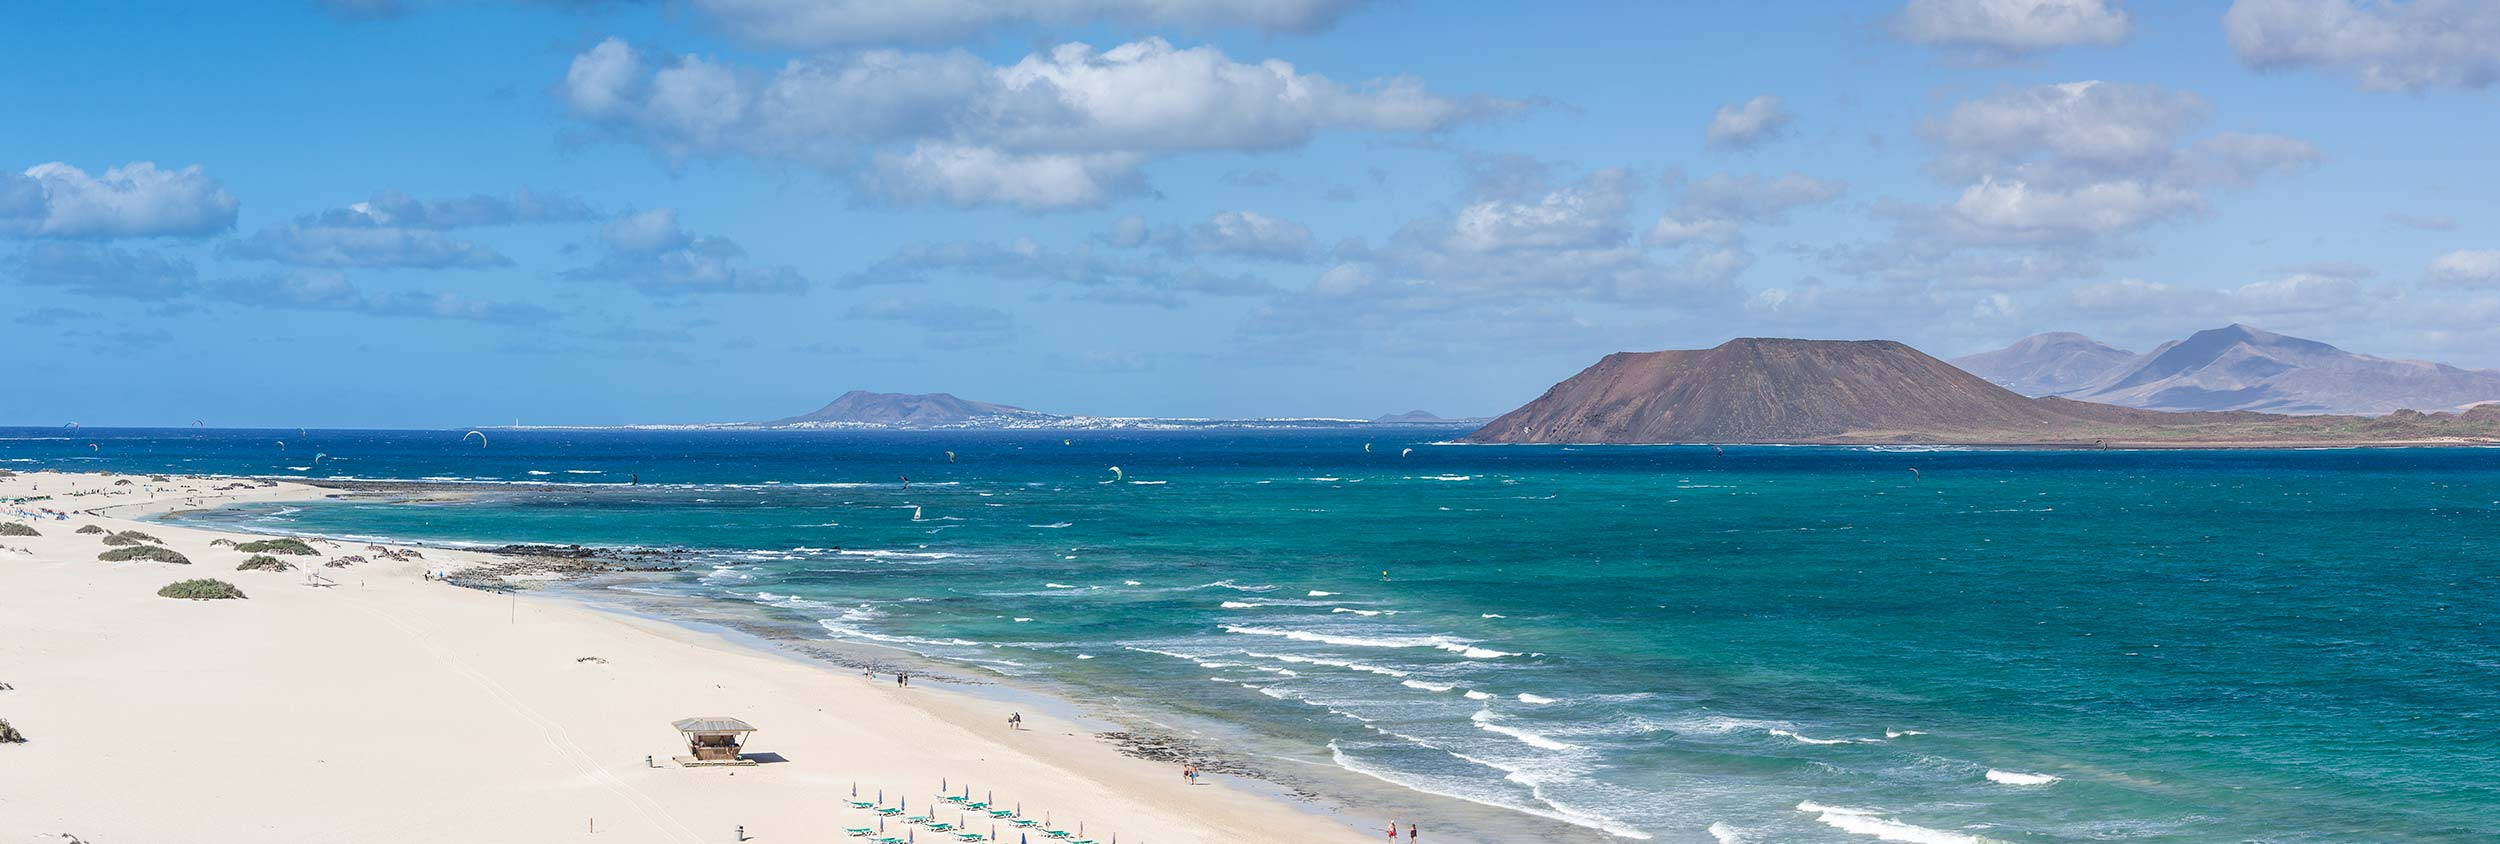 Kitesurf in Fuerteventura, one of the best Kite Spot of Europe